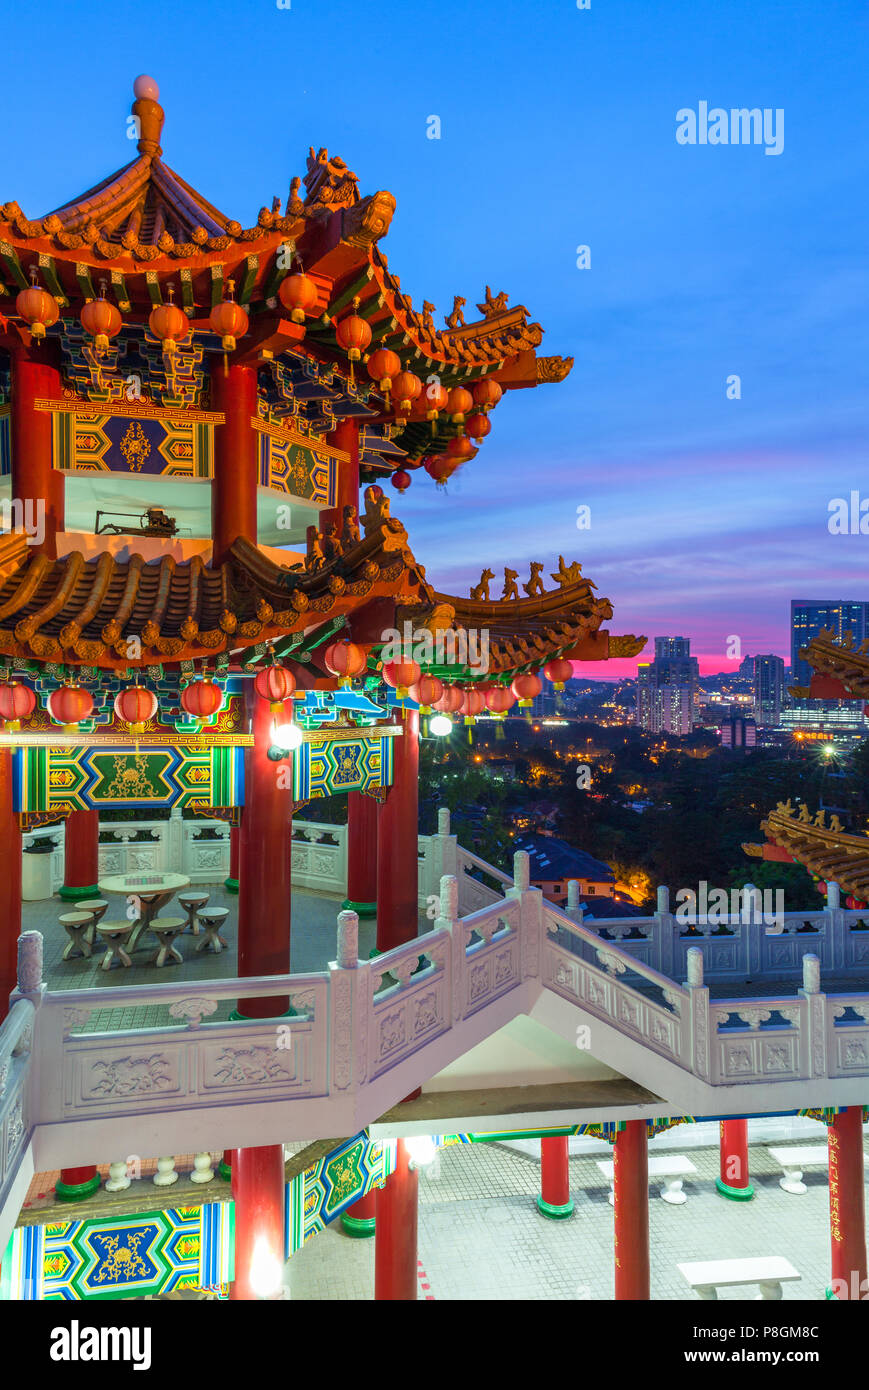 Thean Hou Buddhist Temple decorated with lanterns at dusk with the city skyline on the background, Kuala Lumpur, Malaysia - Stock Image